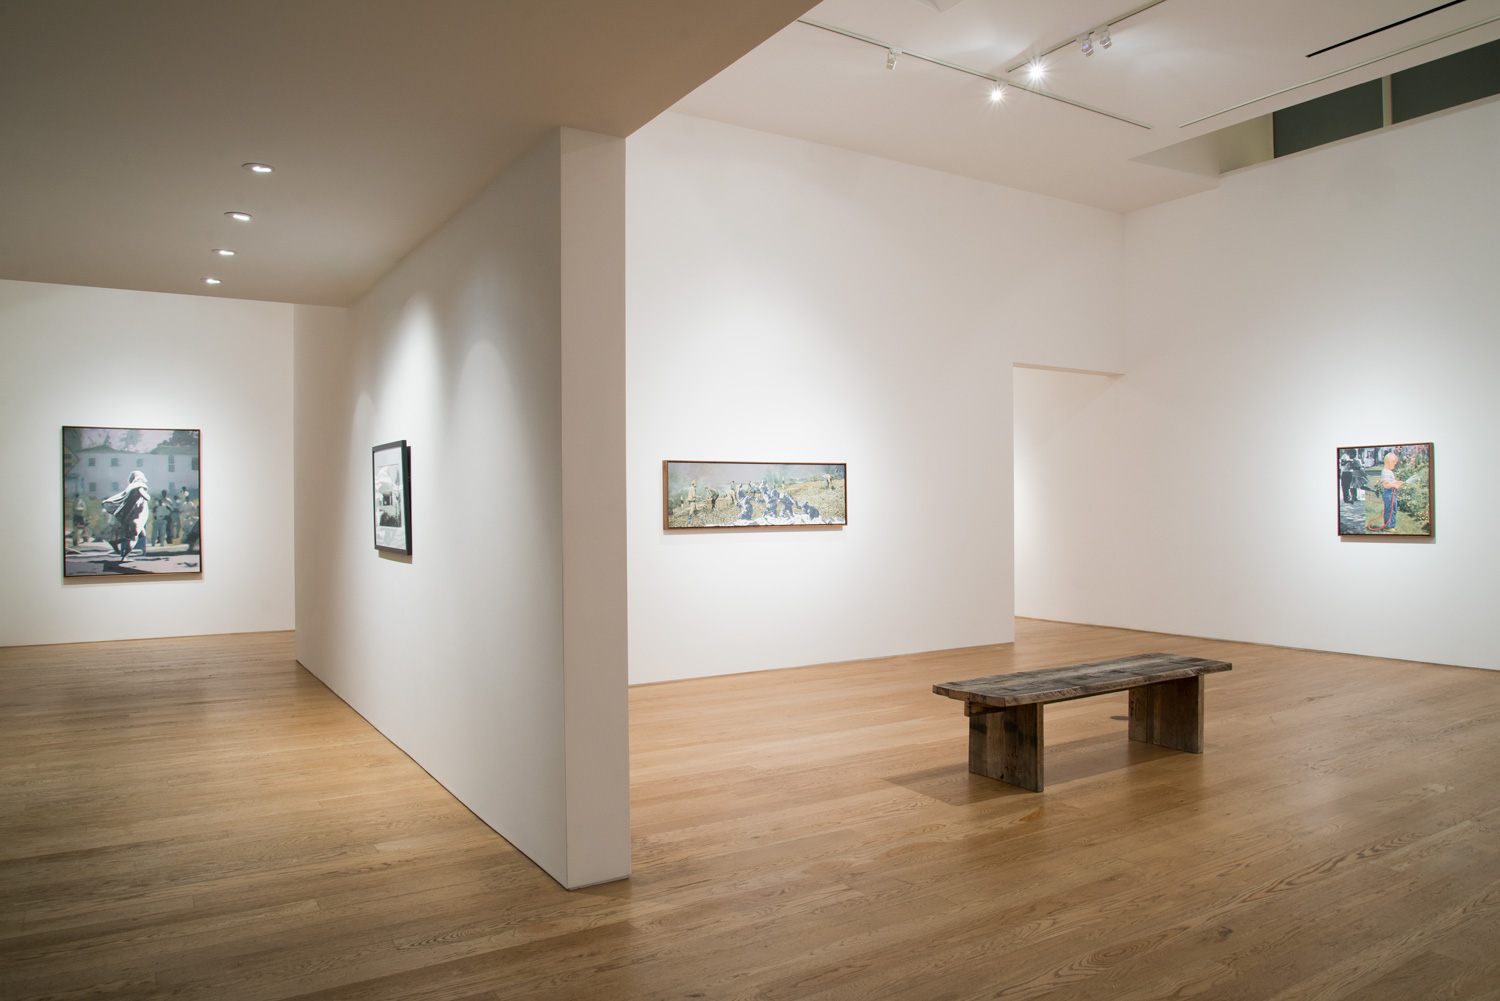 Martin Mull The Edge of Town Installation View, 2015